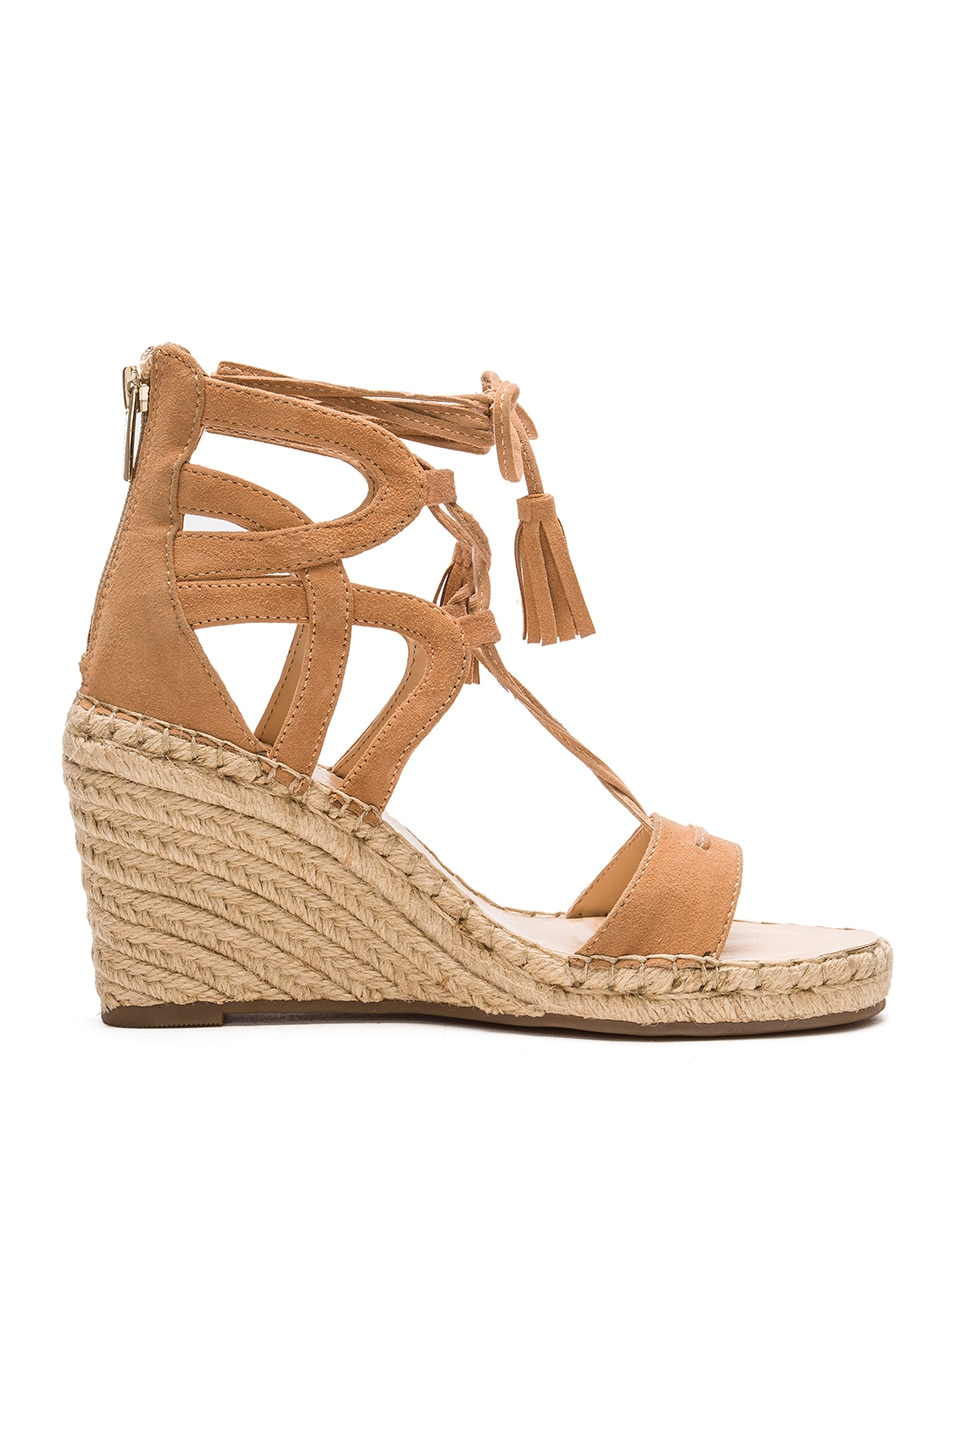 Vince Camuto Tannon Wedge in Buff Suede